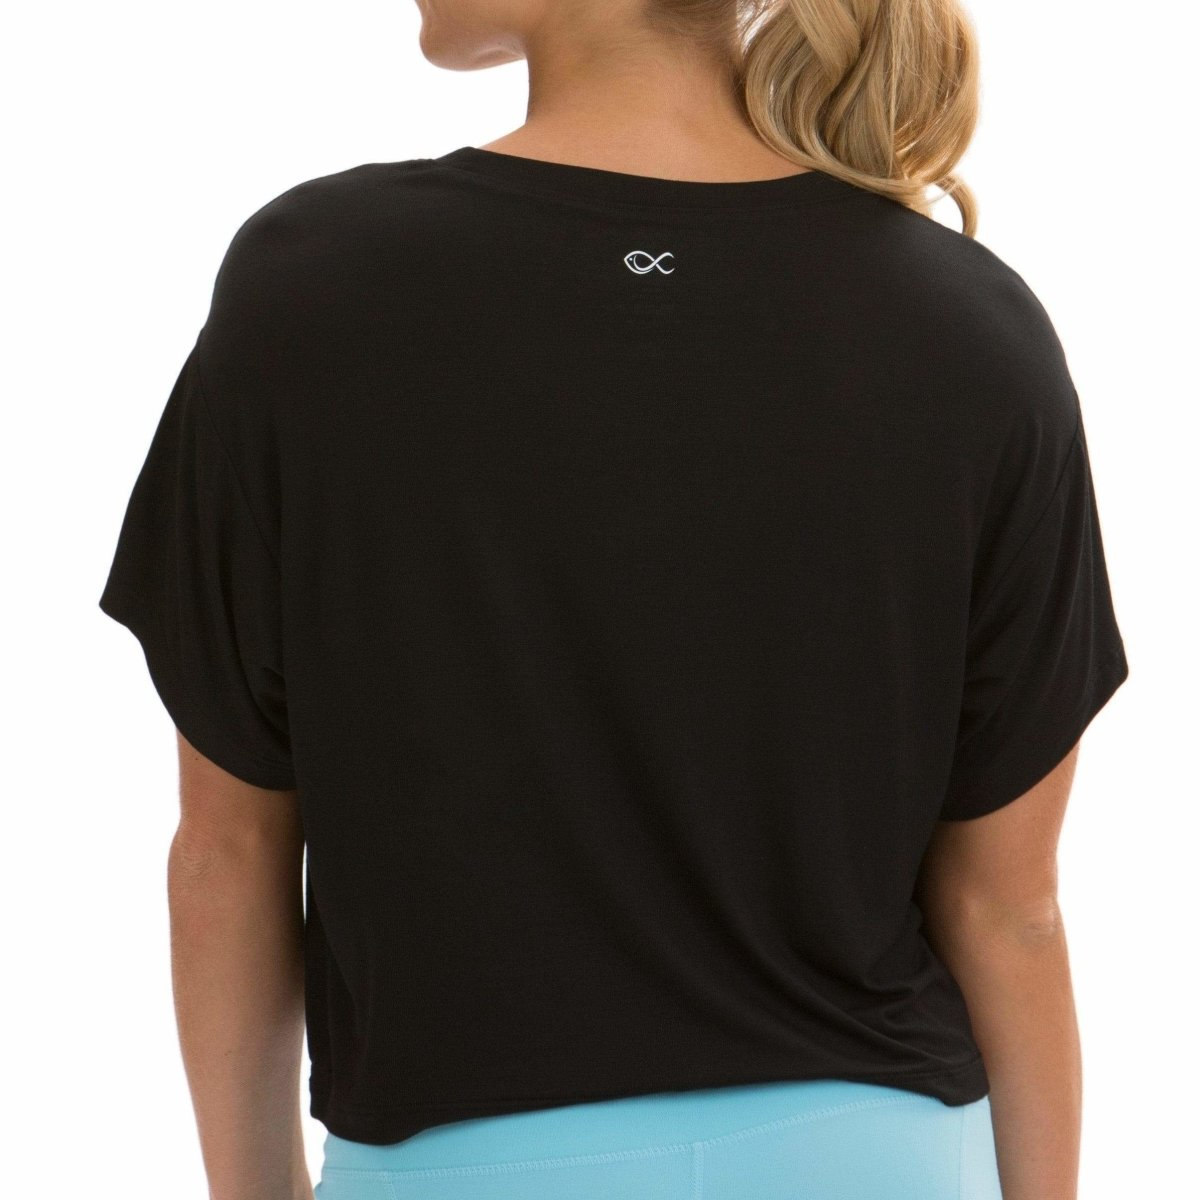 Loose-fit Crop Top in Black - Southern Athletica